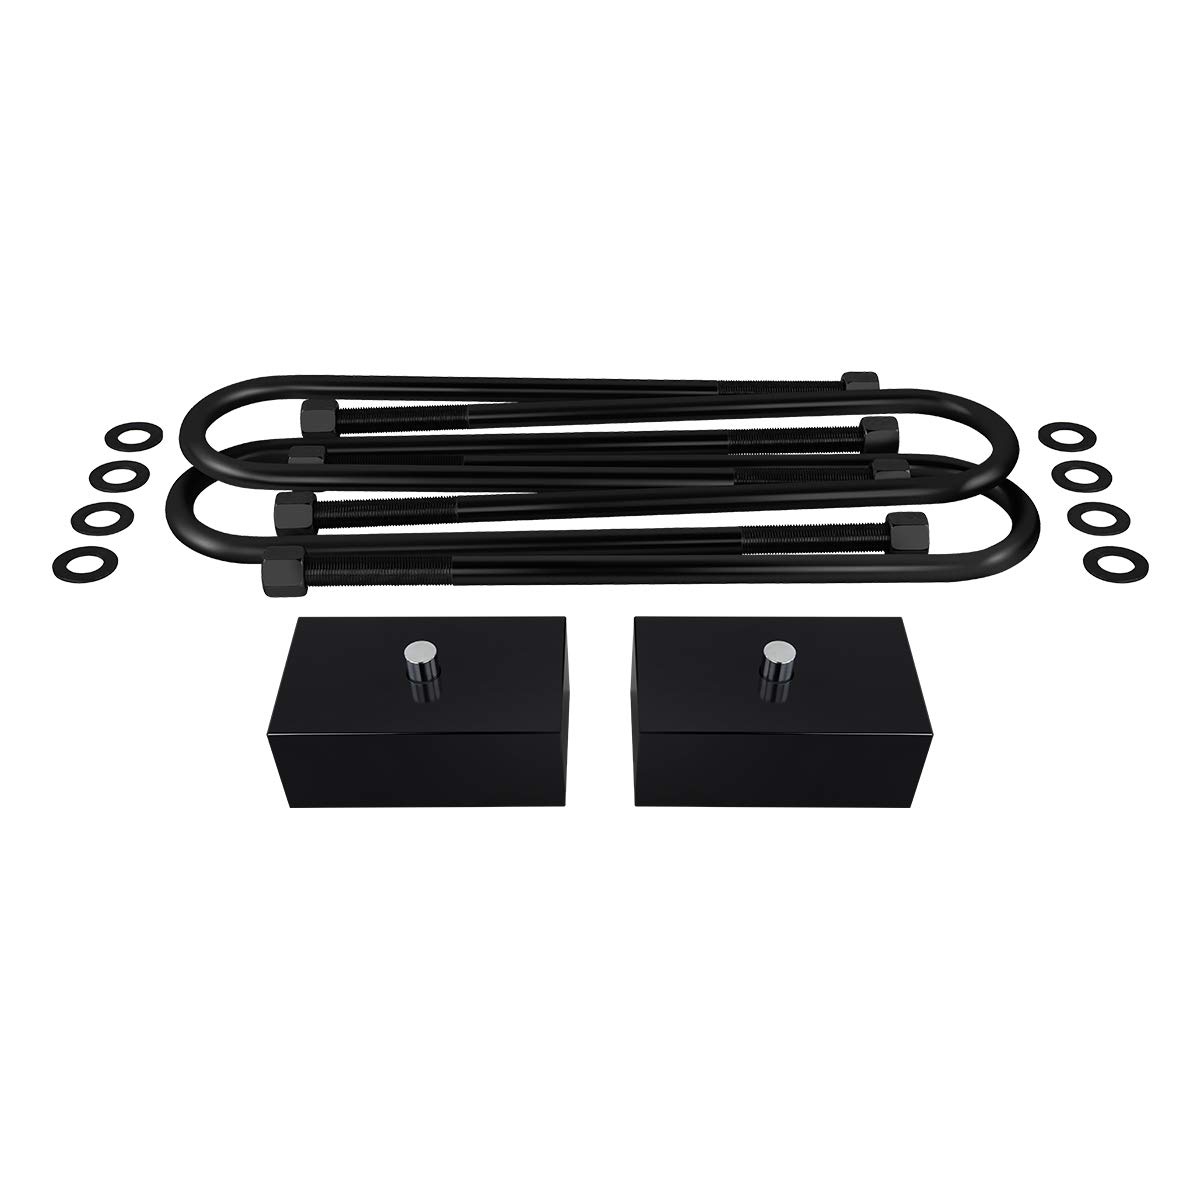 3 Rear Lift Kit Shock Extenders Supreme Suspensions Full Lift Kit for 2005-2018 Ford F250 F350 Super Duty w//OVERLOADS 3 Front Bump Stop Spacers 4WD Black Brake Line /& Sway Bar Brackets